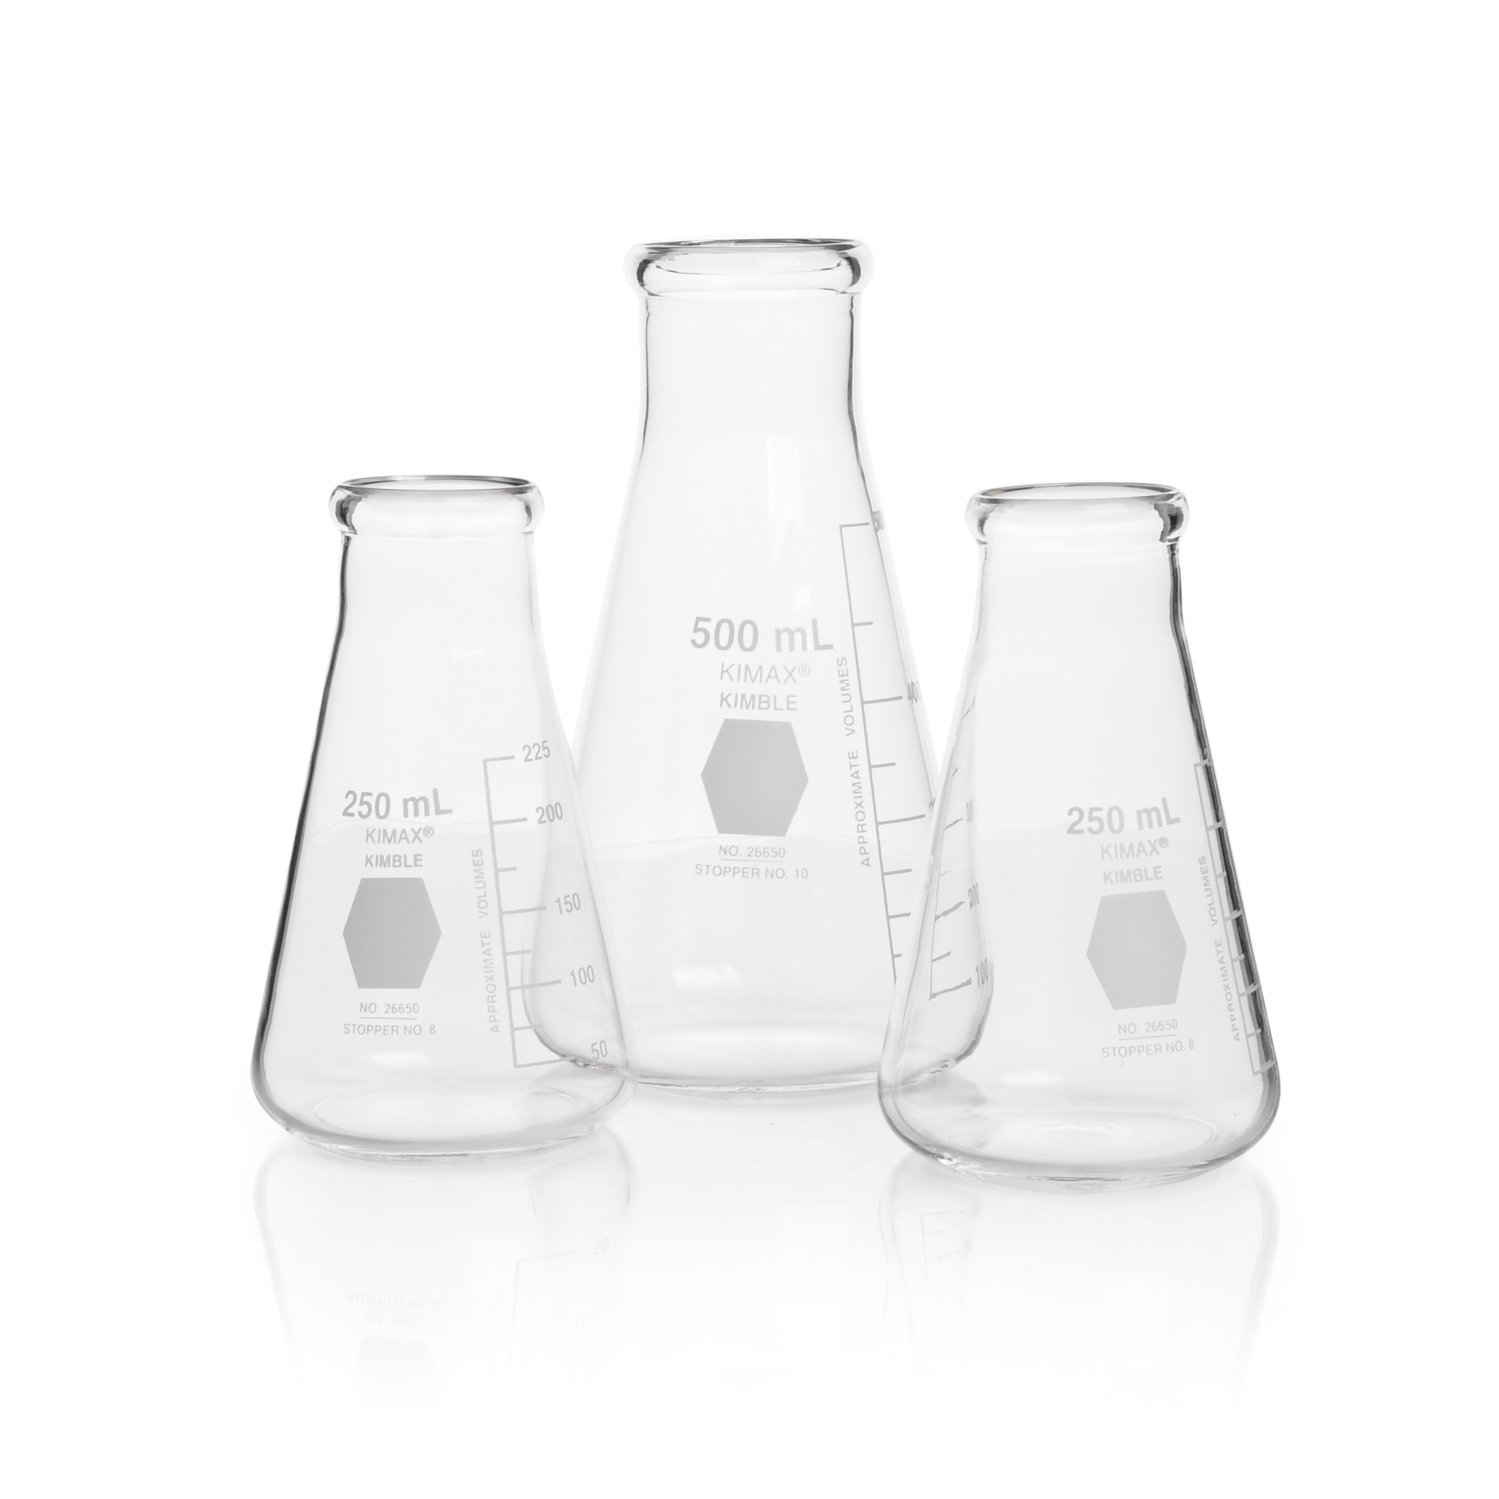 KIMBLE® KIMAX® Erlenmeyer Flask, Wide Mouth, 250 mL